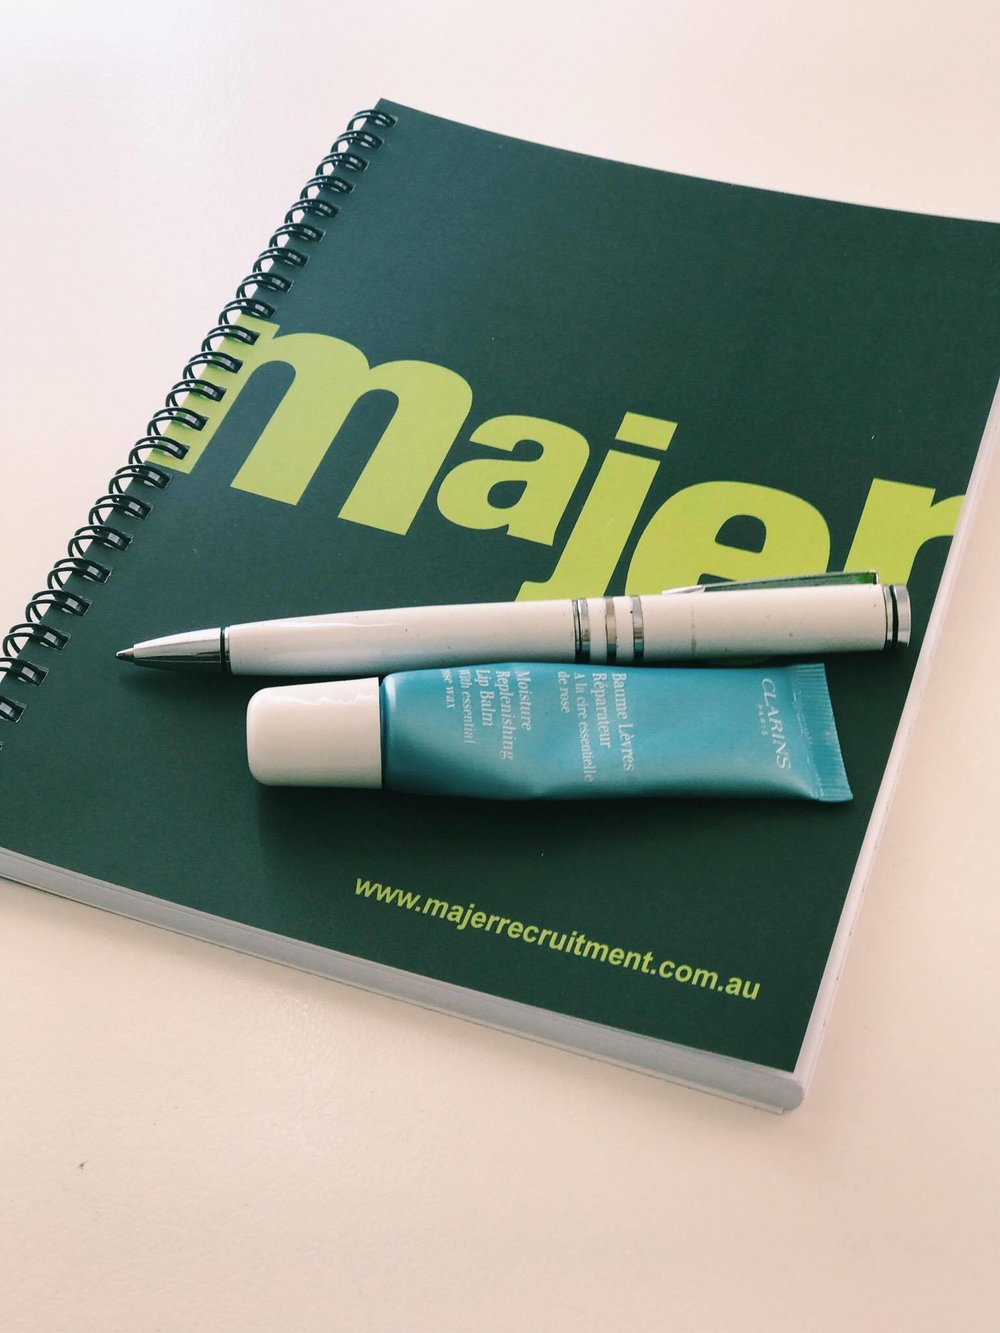 majer recruitment